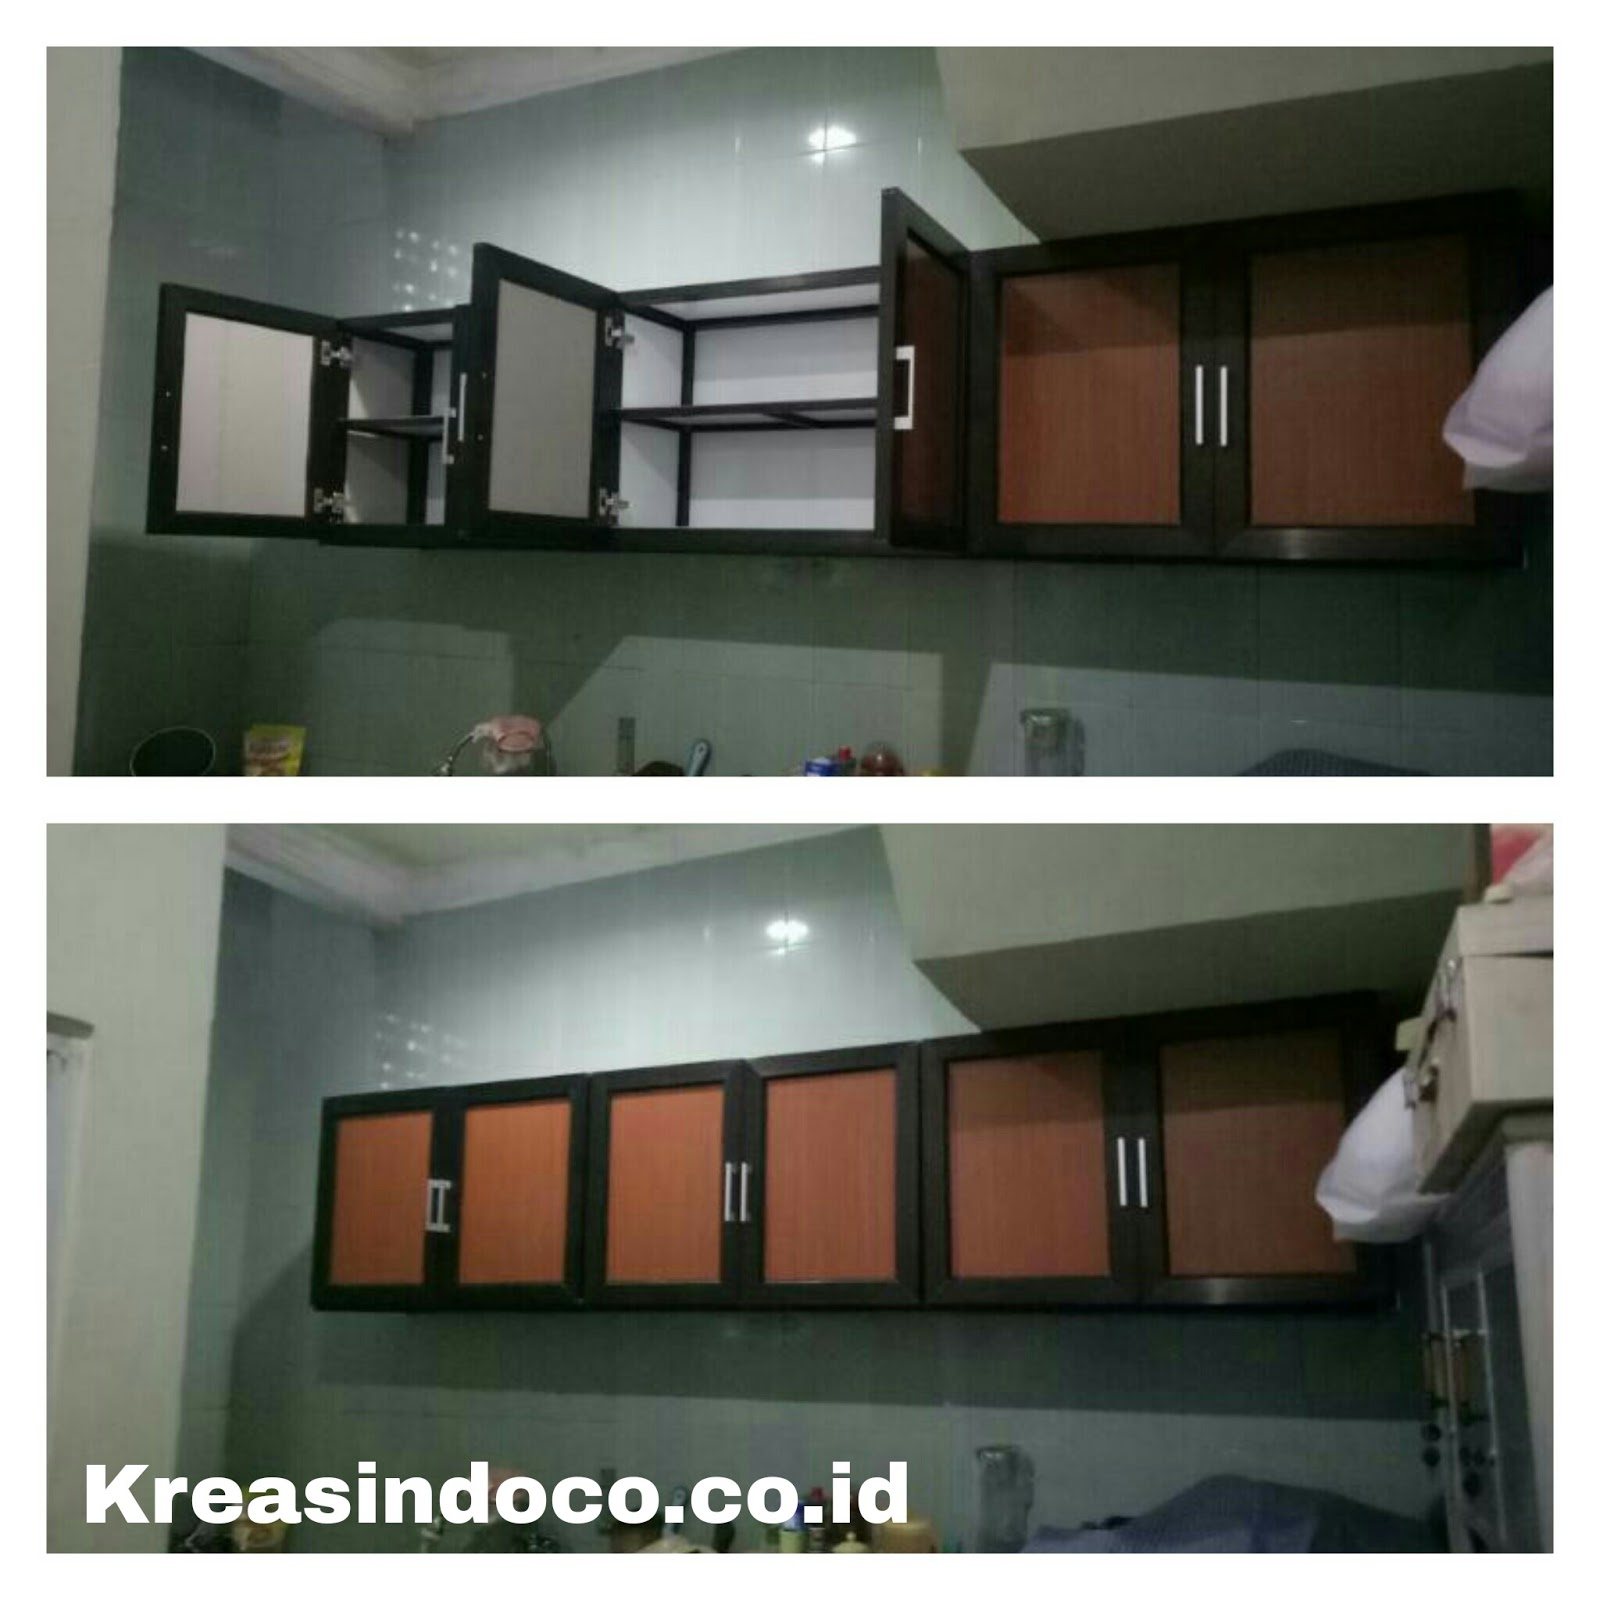 Interior design jogja kitchen set acp kitchen set pemasangan di karadenan bogor